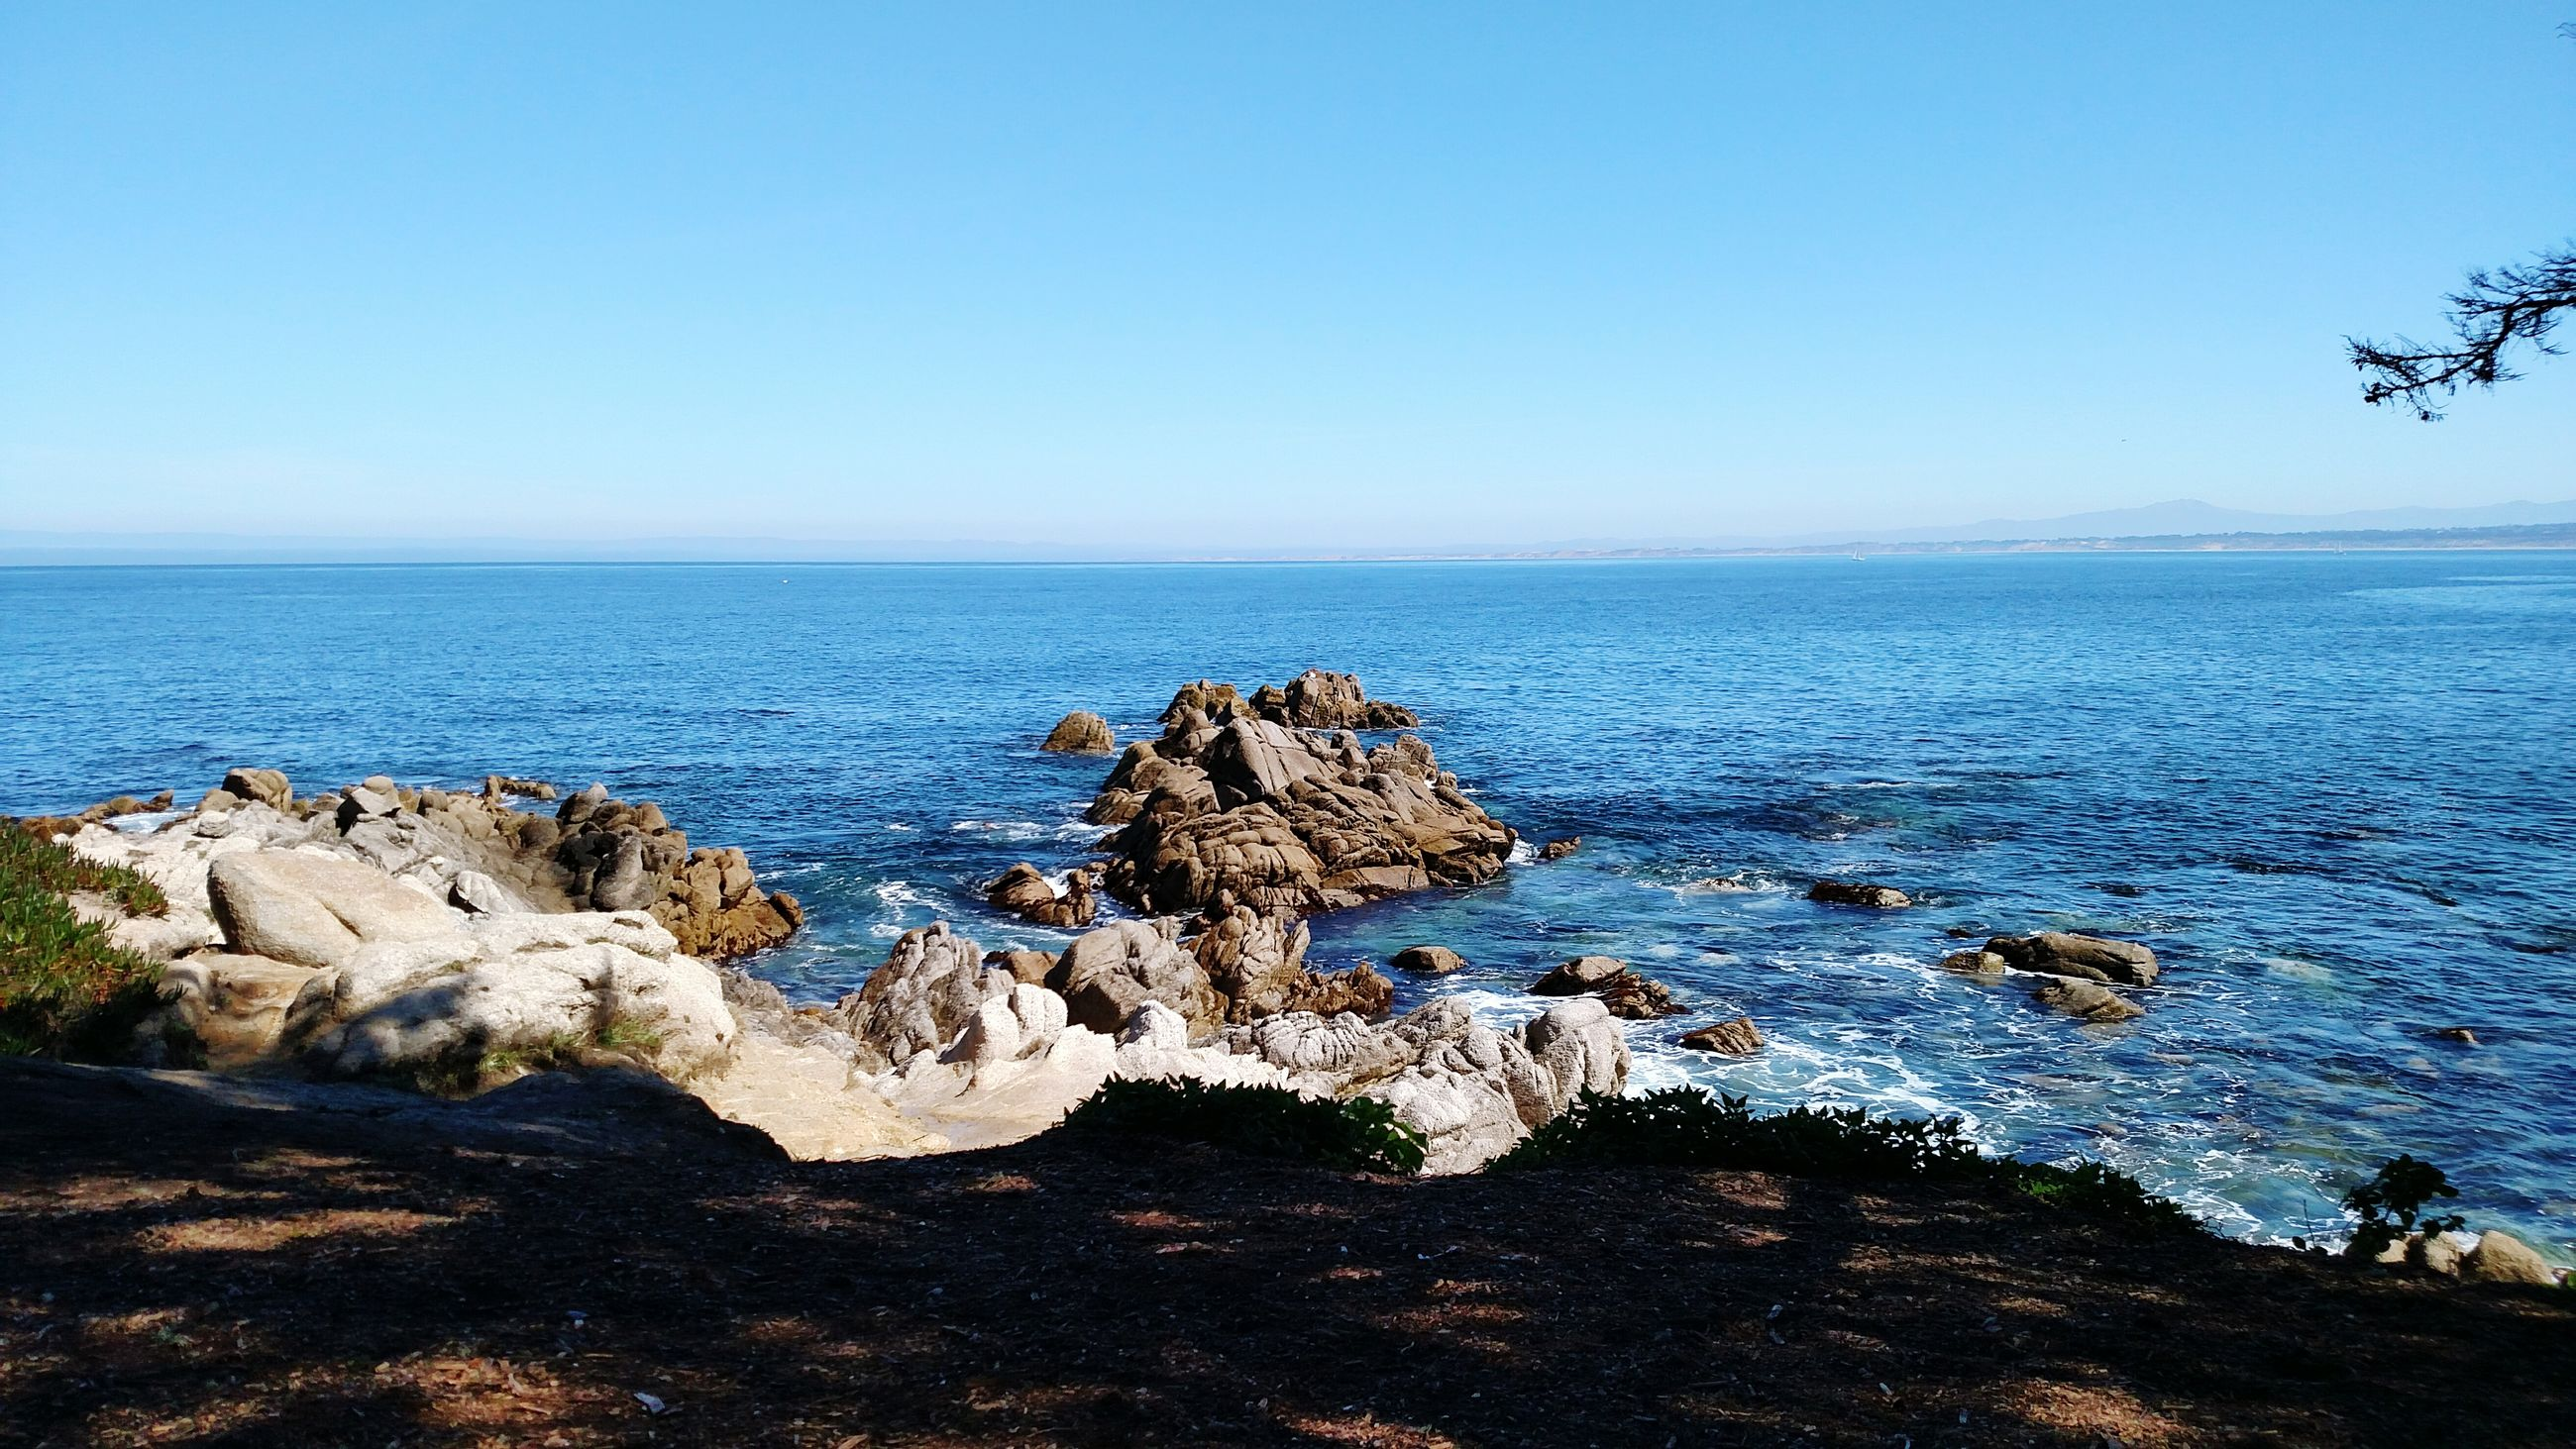 sea, horizon over water, clear sky, water, blue, nature, beauty in nature, beach, scenics, tranquility, no people, outdoors, day, sky, large group of animals